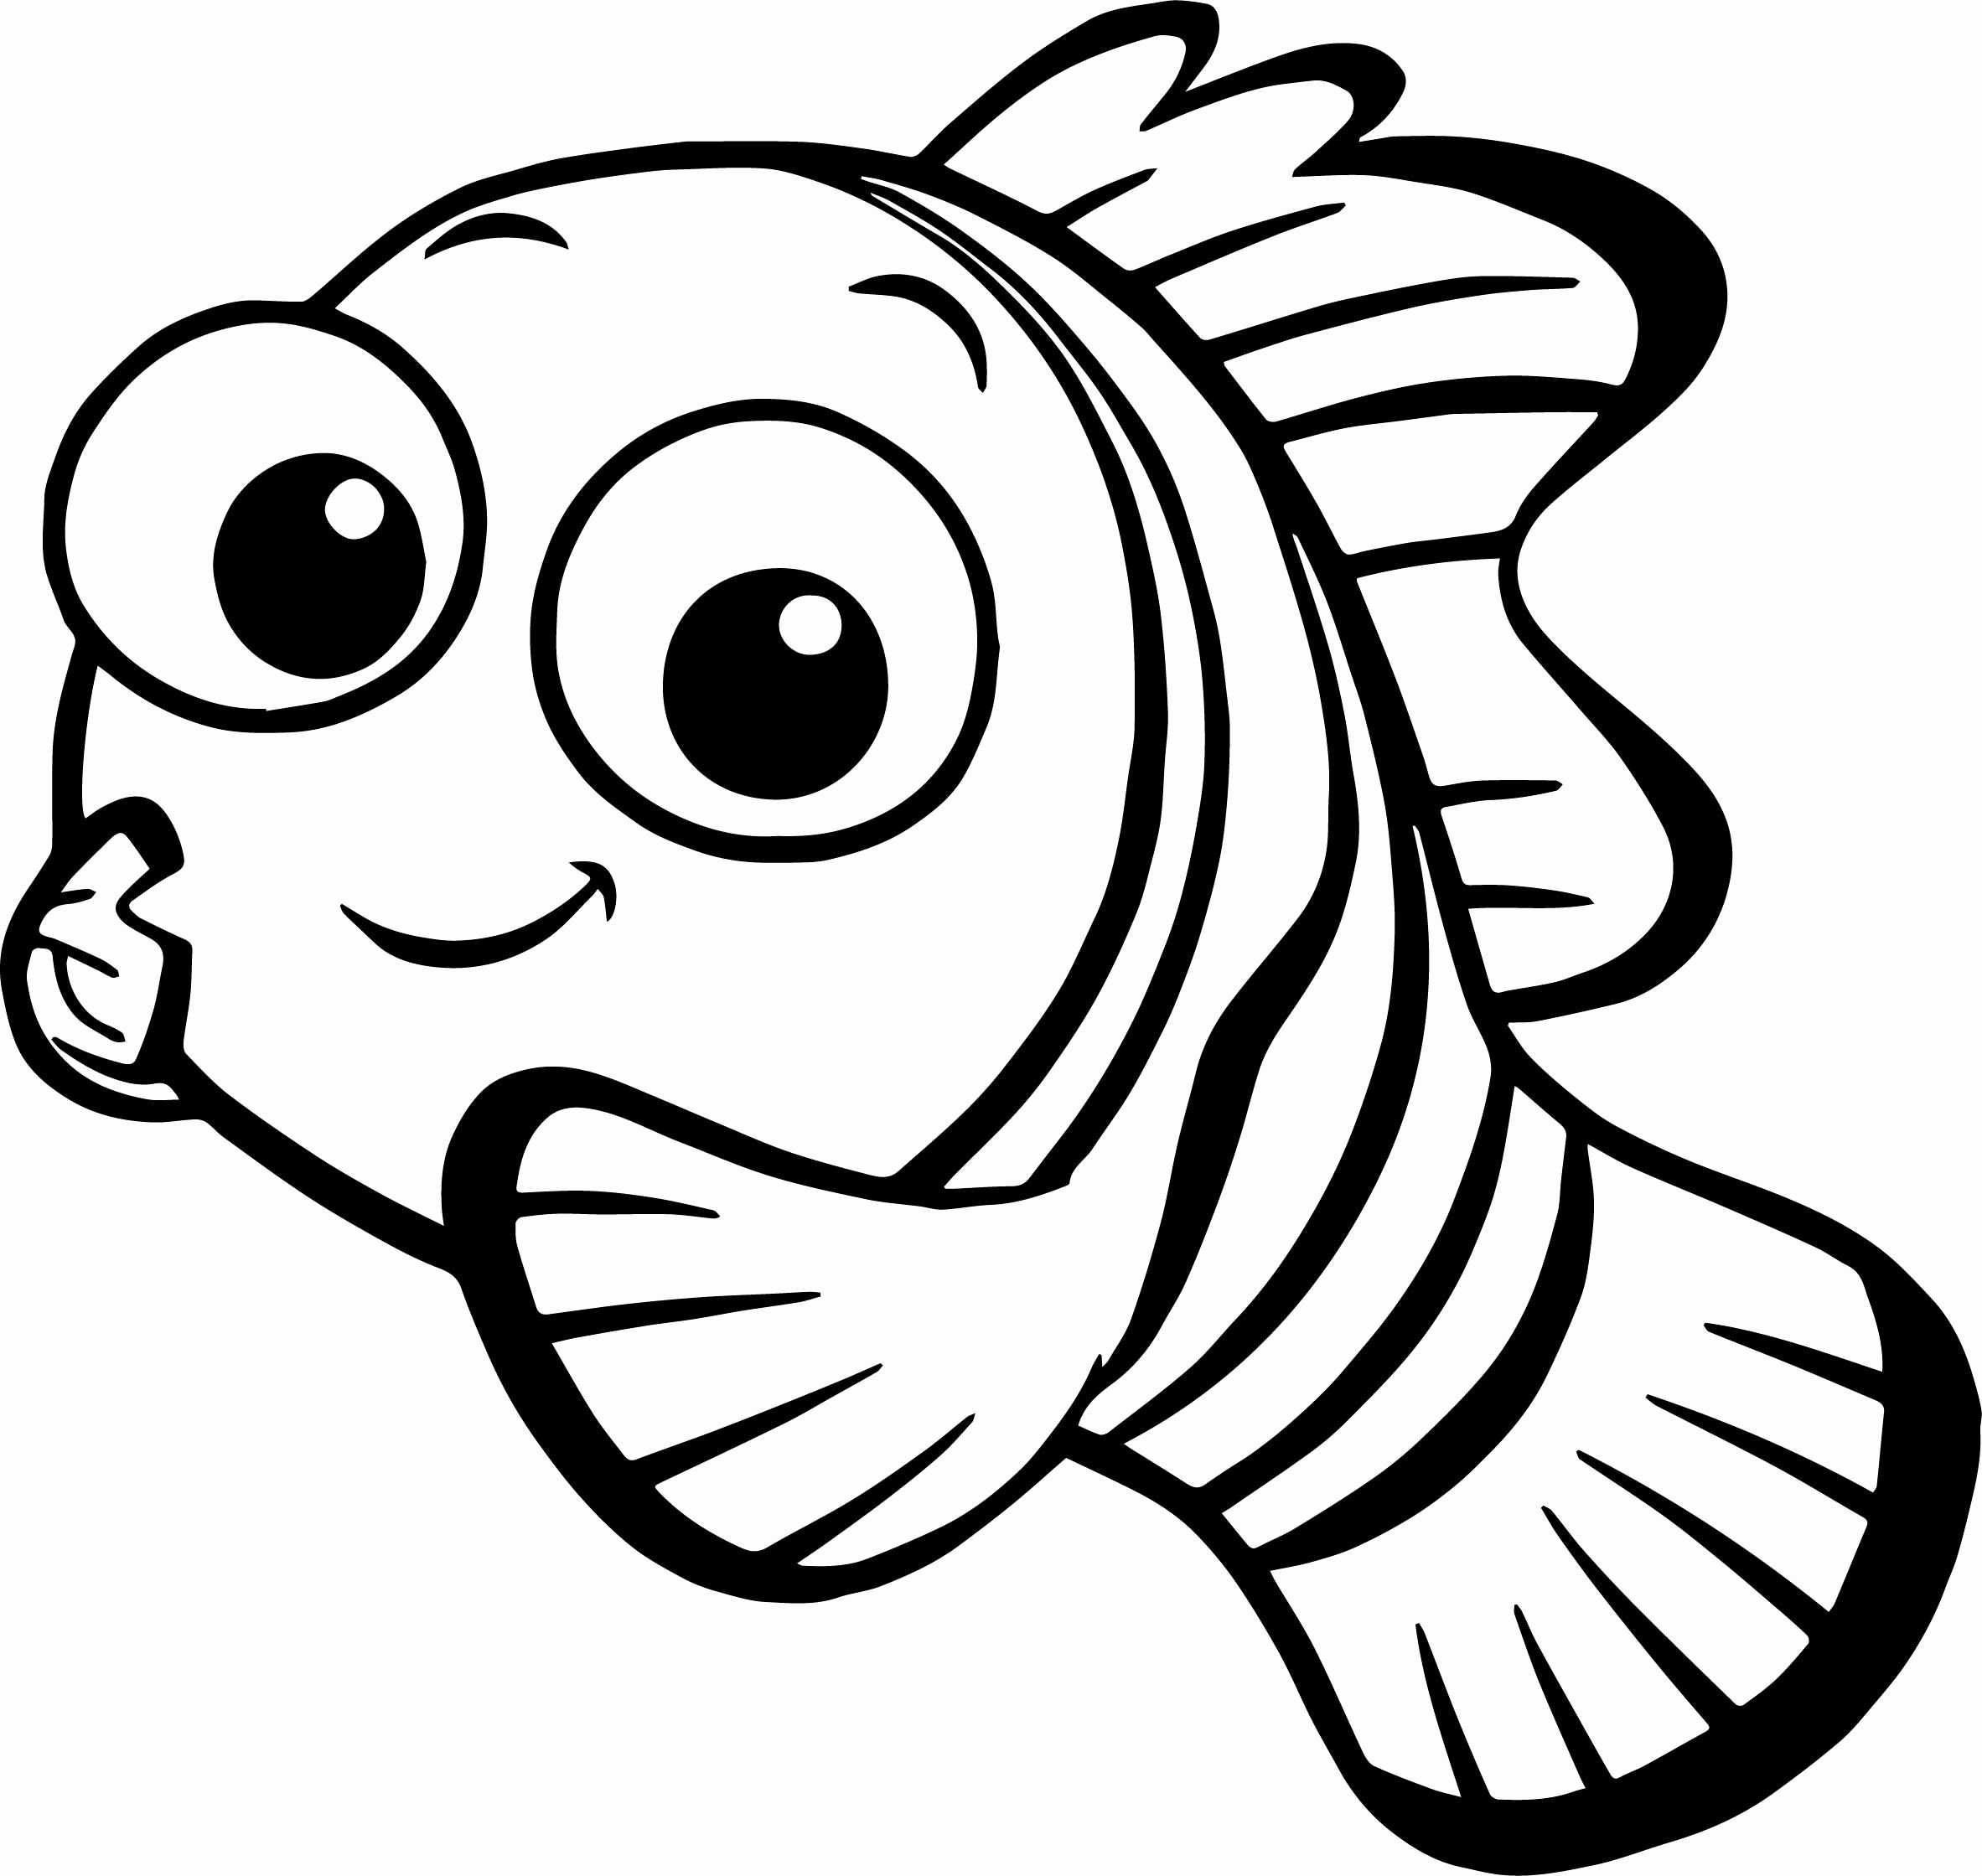 Finding Nemo Worksheet or Finding Nemo Coloring Page Free Coloring Pages Download